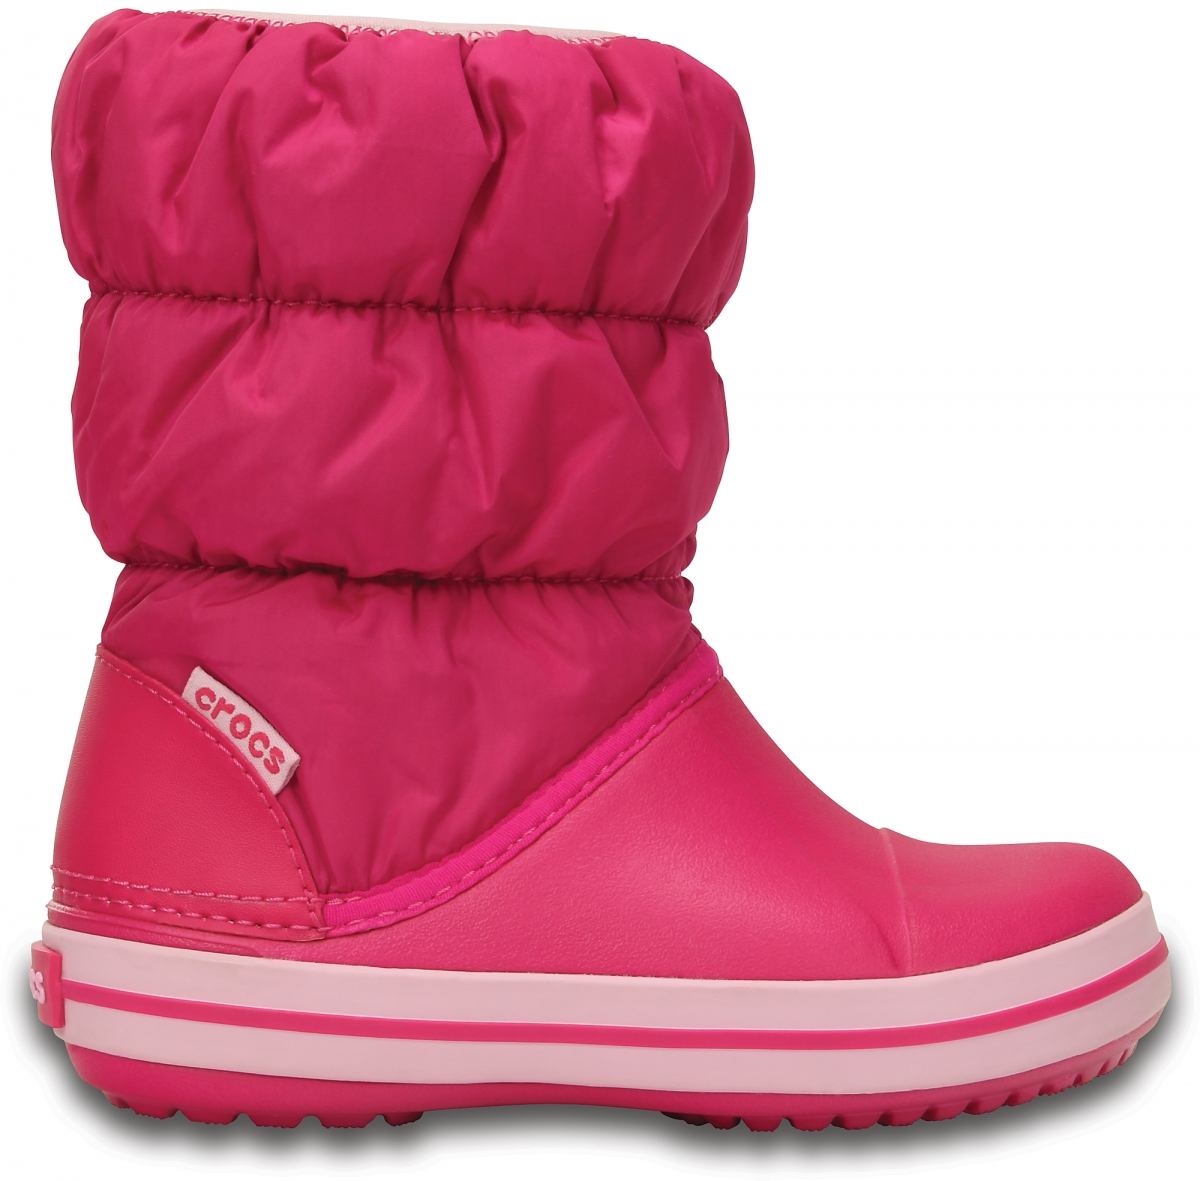 Crocs Winter Puff Boot Kids - Candy Pink, C12 (29-30)